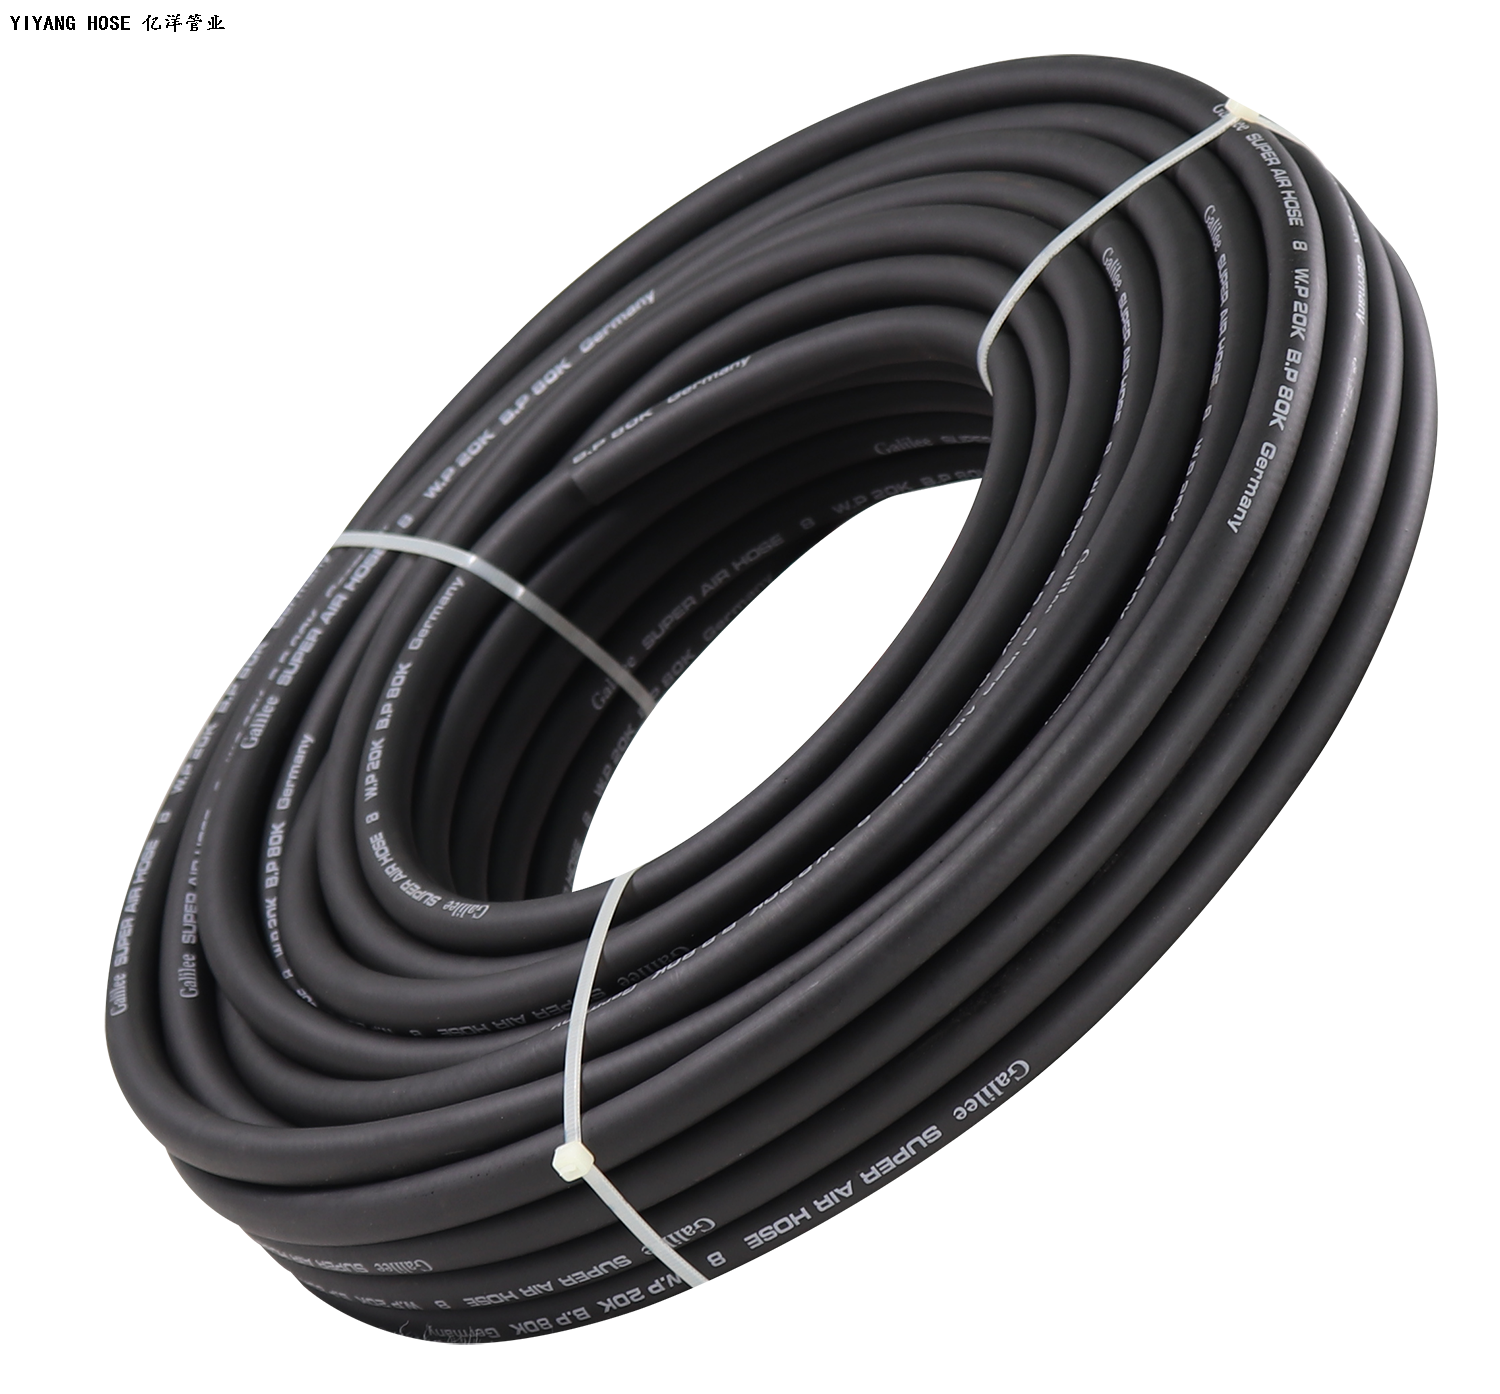 GALILEE AIR HOSE